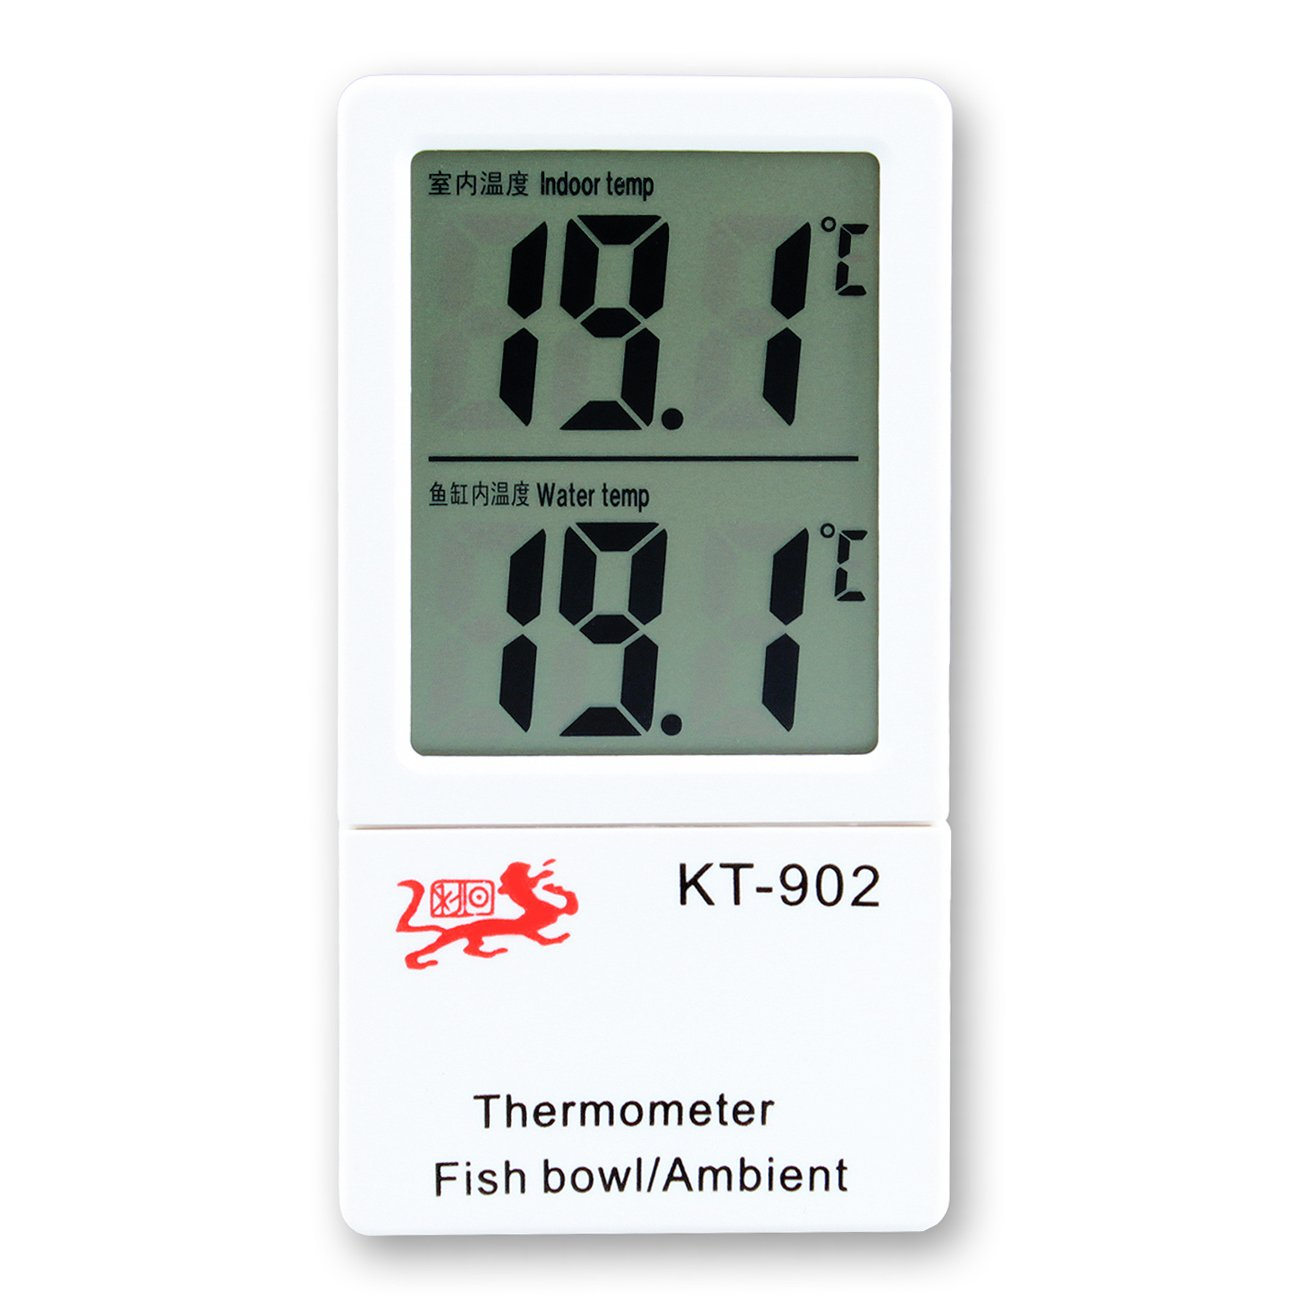 Tera Fishbowl Fish Tank Aquarium and Ambient Indoor Temperature Dual Digital LCD Thermometer by Tera